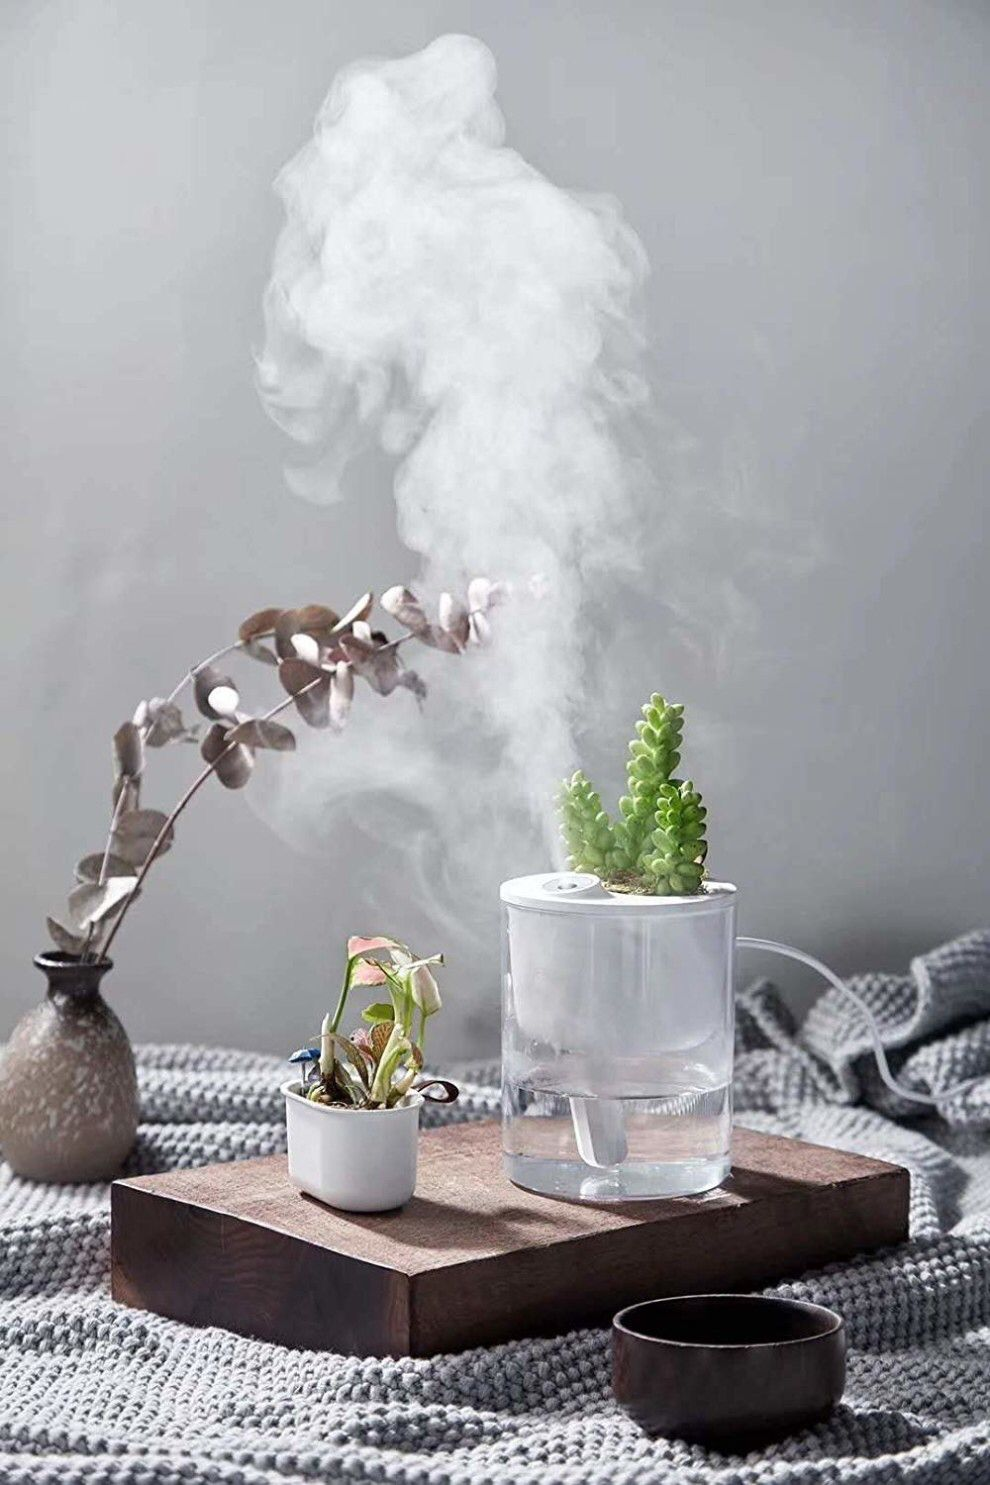 A desk humidifier with a builtin plant box, so you can